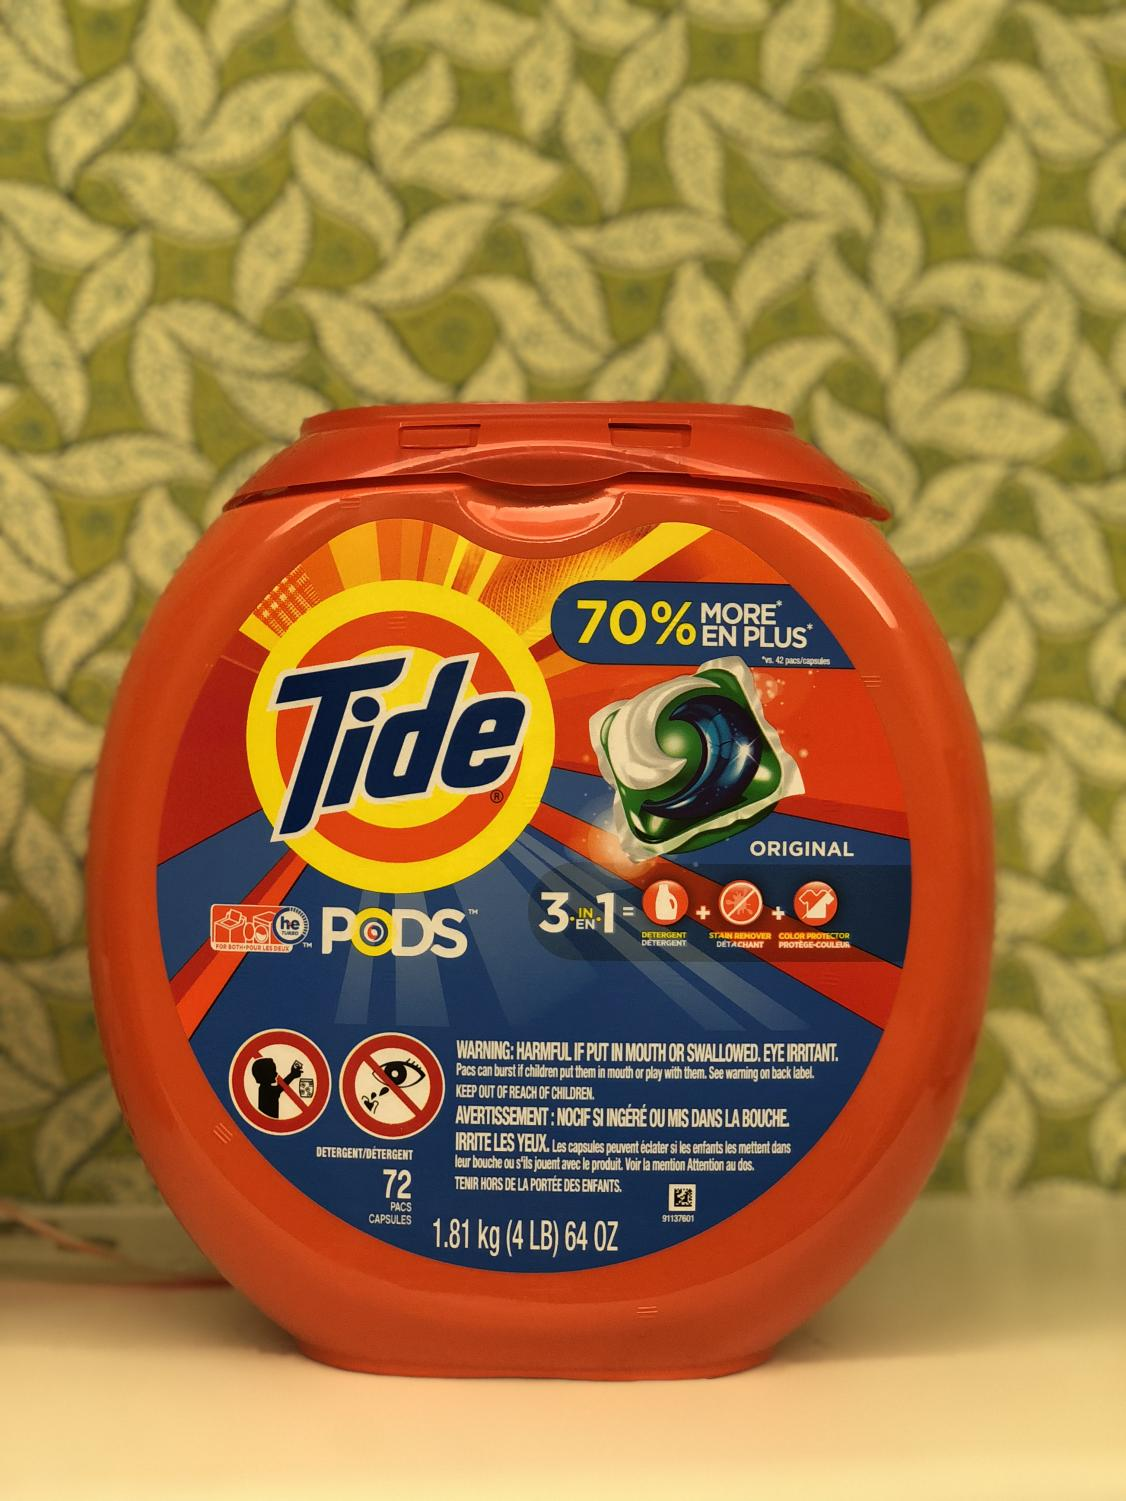 The Tide ads, while funny, did not address some of the problems associated with using their products.